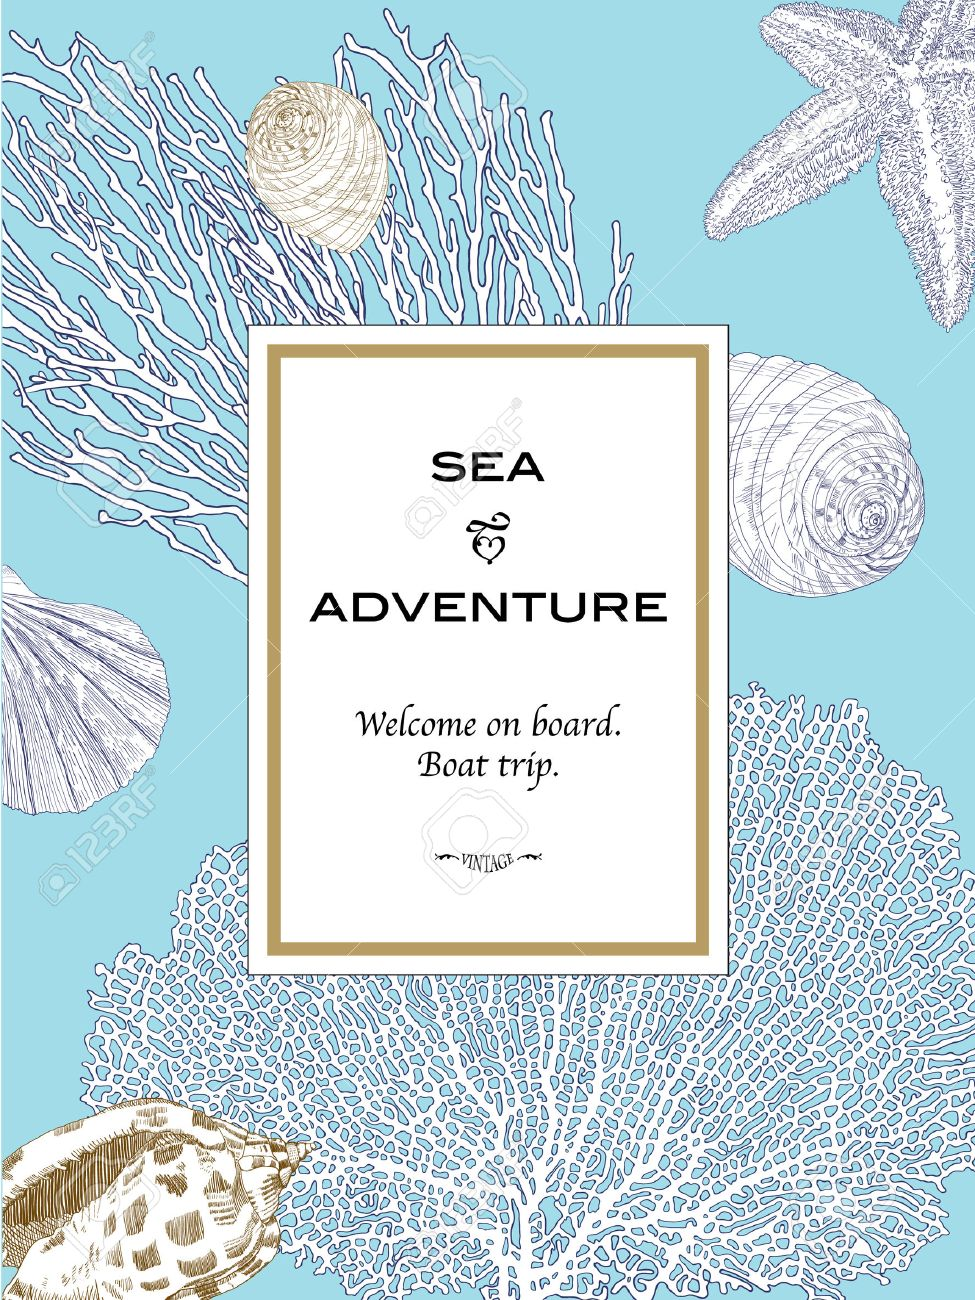 vertical card in marine style with seashell starfish and coral